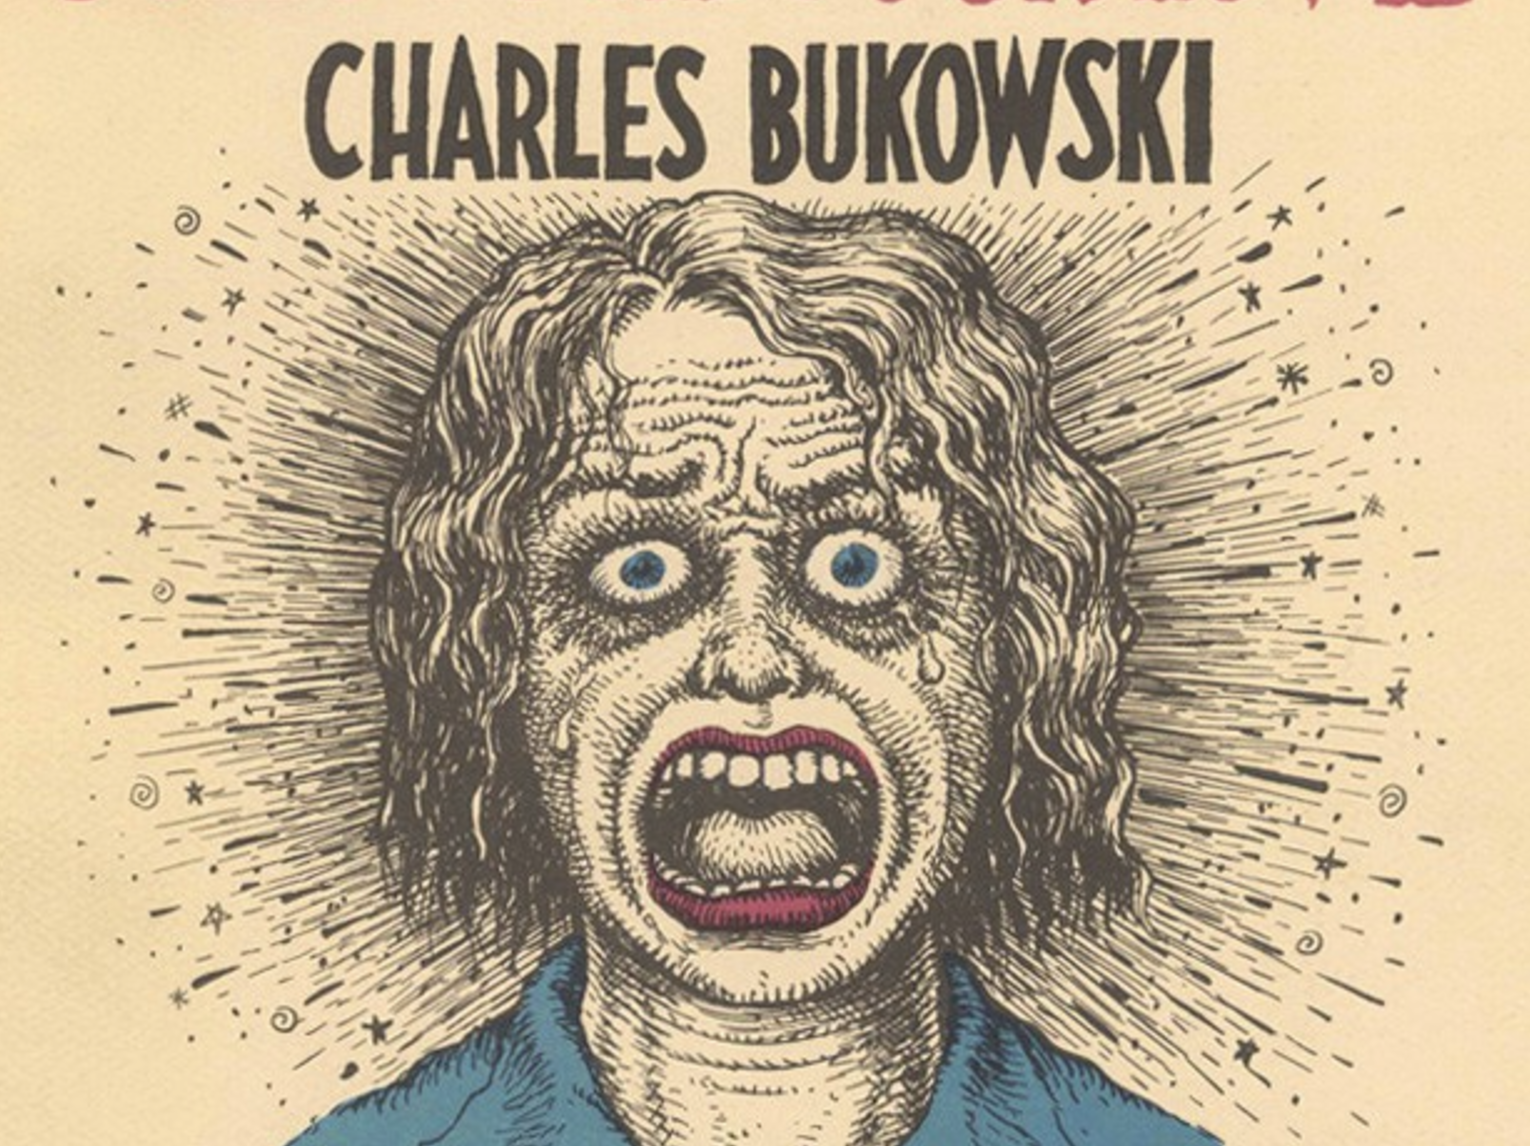 Three Charles Bukowski Books Illustrated by Robert Crumb: Underground Comic Art Meets Outsider Literature